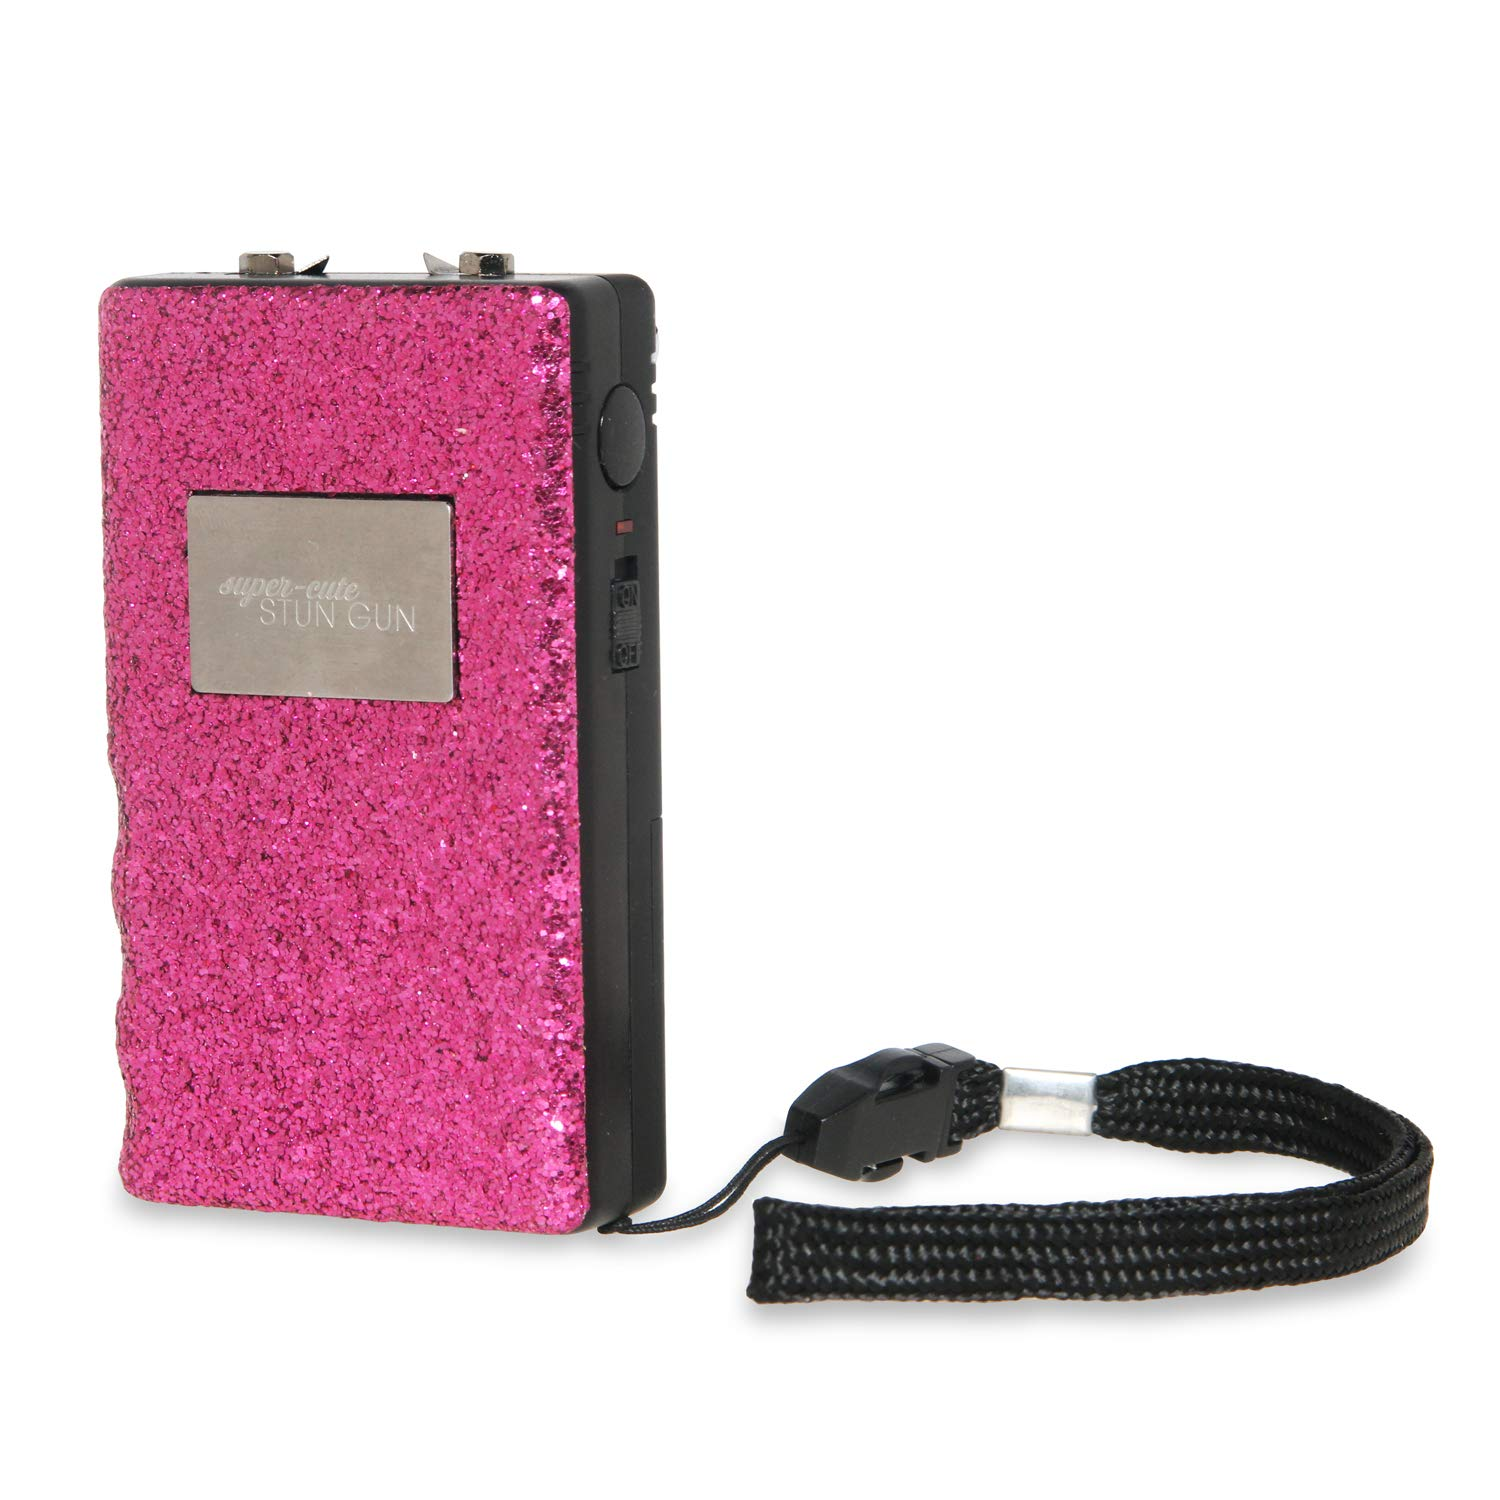 Super-Cute Pink Stun Gun for Women – Extreme Pain and Powerful Voltage Stun Gun – Reliable Woman s Personal Protection Self Defense